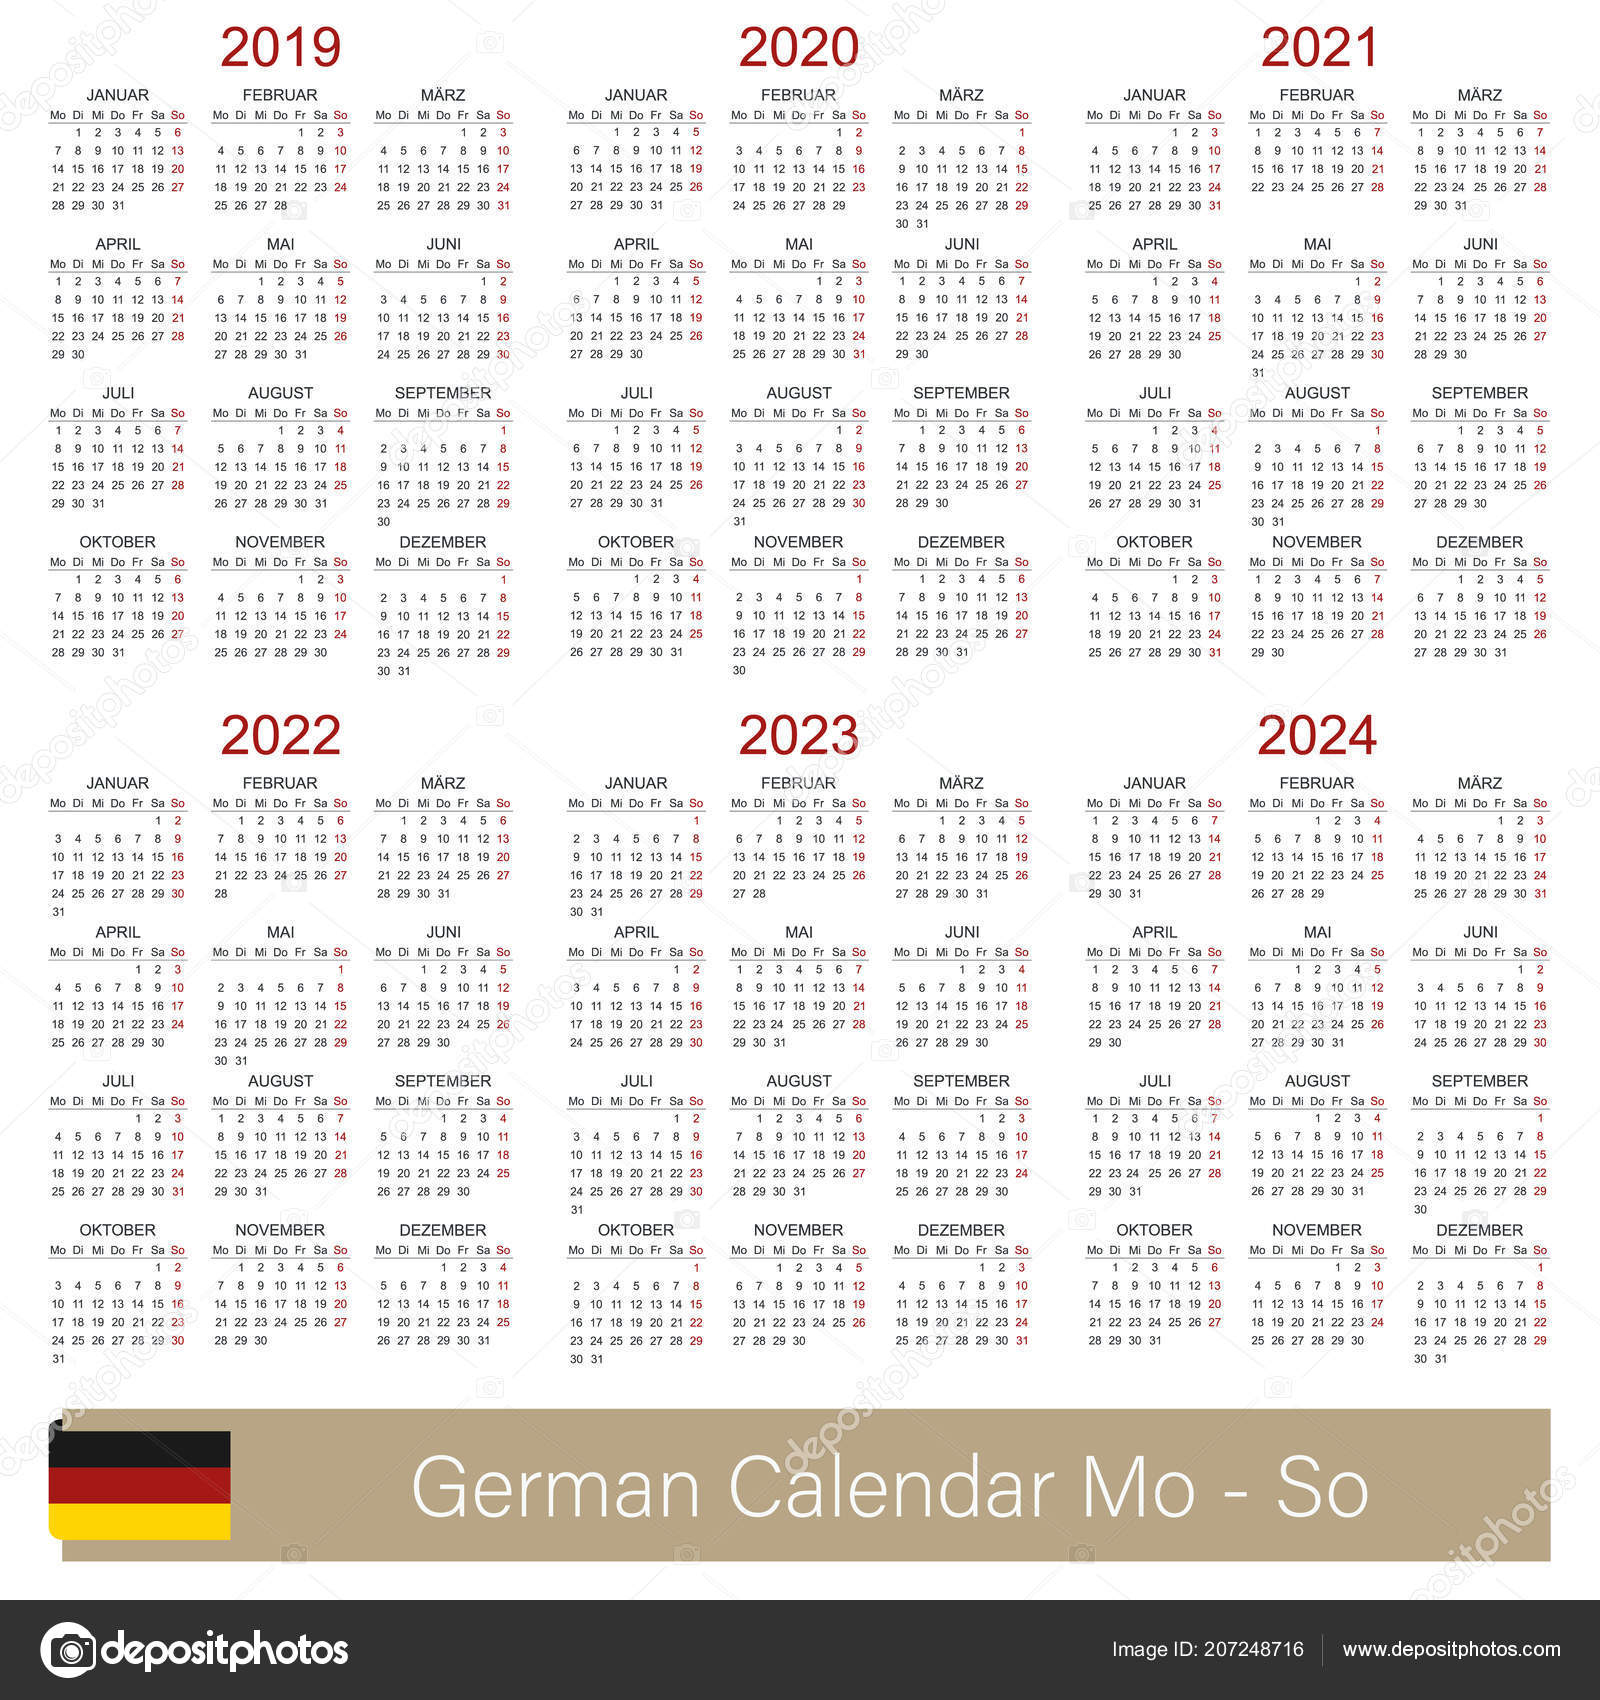 german planning calendar 2019 2024 week starts on monday simple calendar template for 2019 2020 2021 2022 2023 and 2024 printable calendar